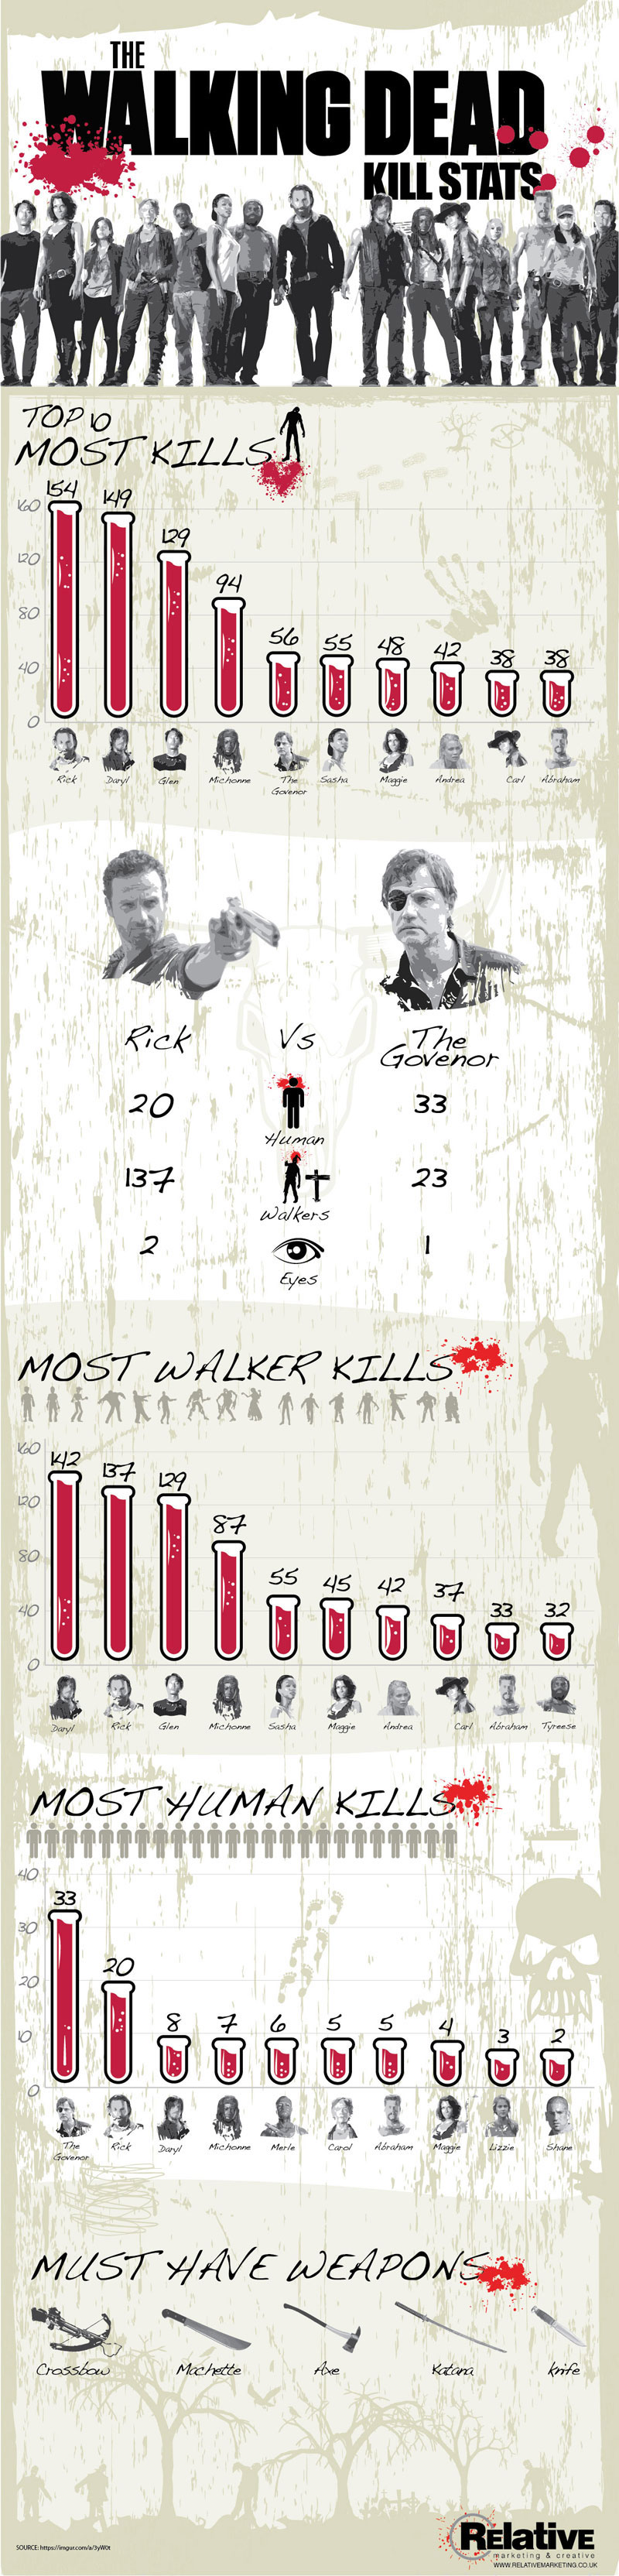 Walking-Dead-Infographic-2015